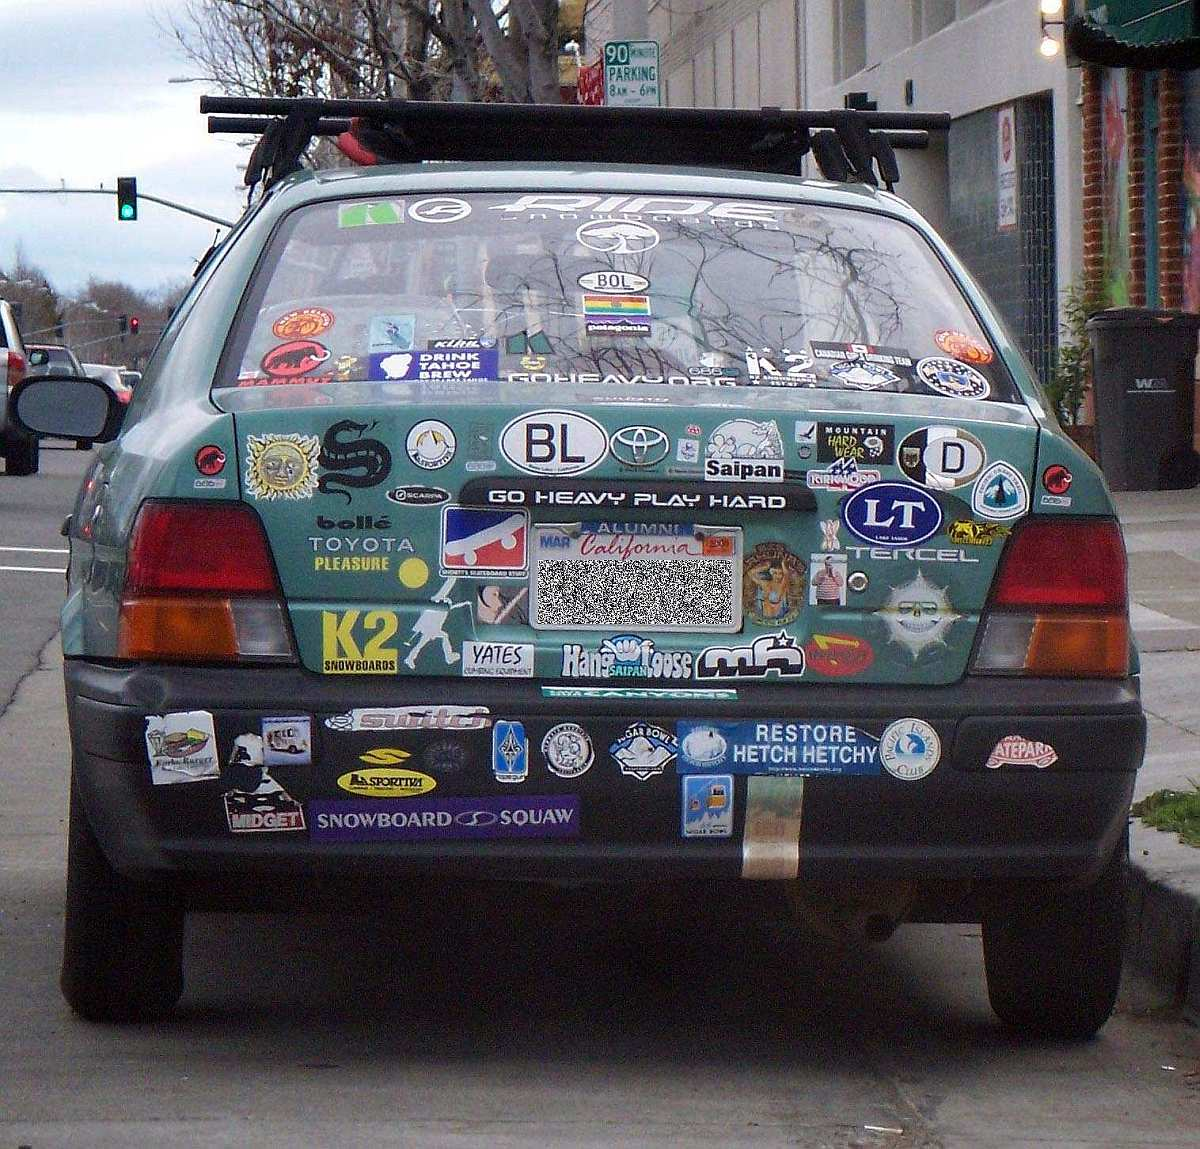 Bumper sticker car of the month